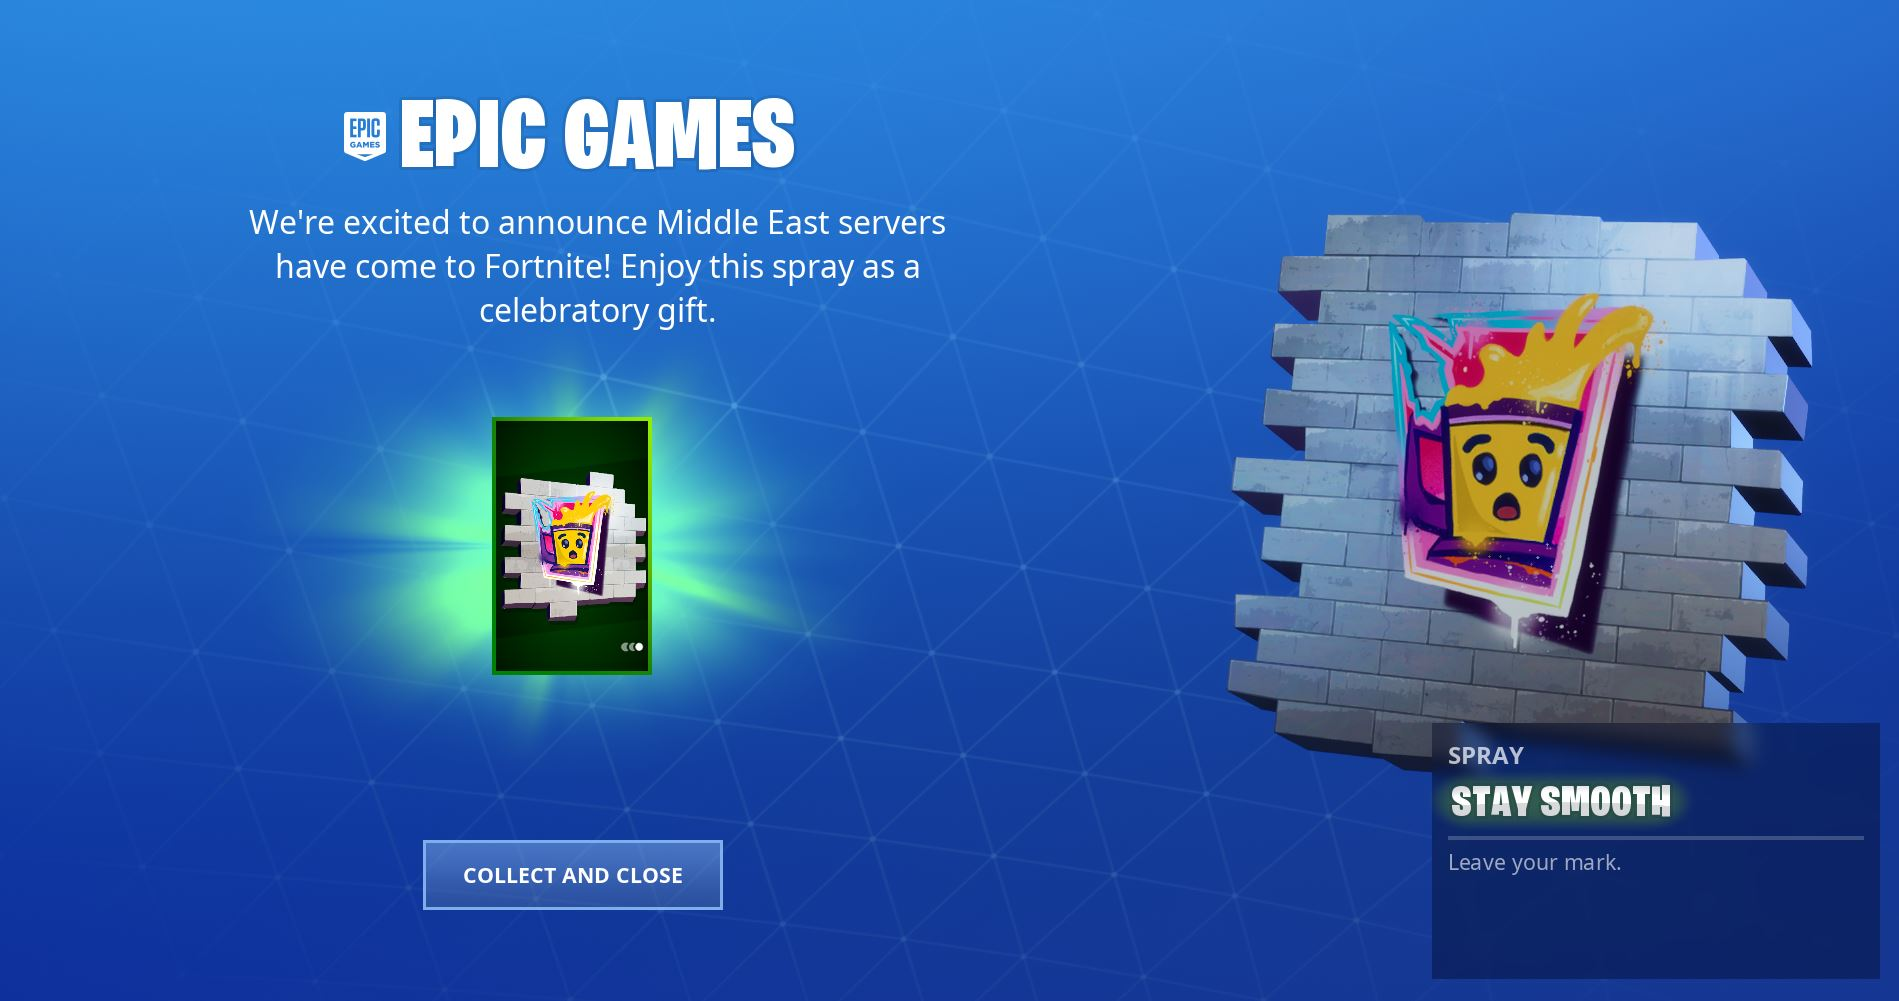 Epic Games Providing Free Fortnite Stay Smooth Spray to all